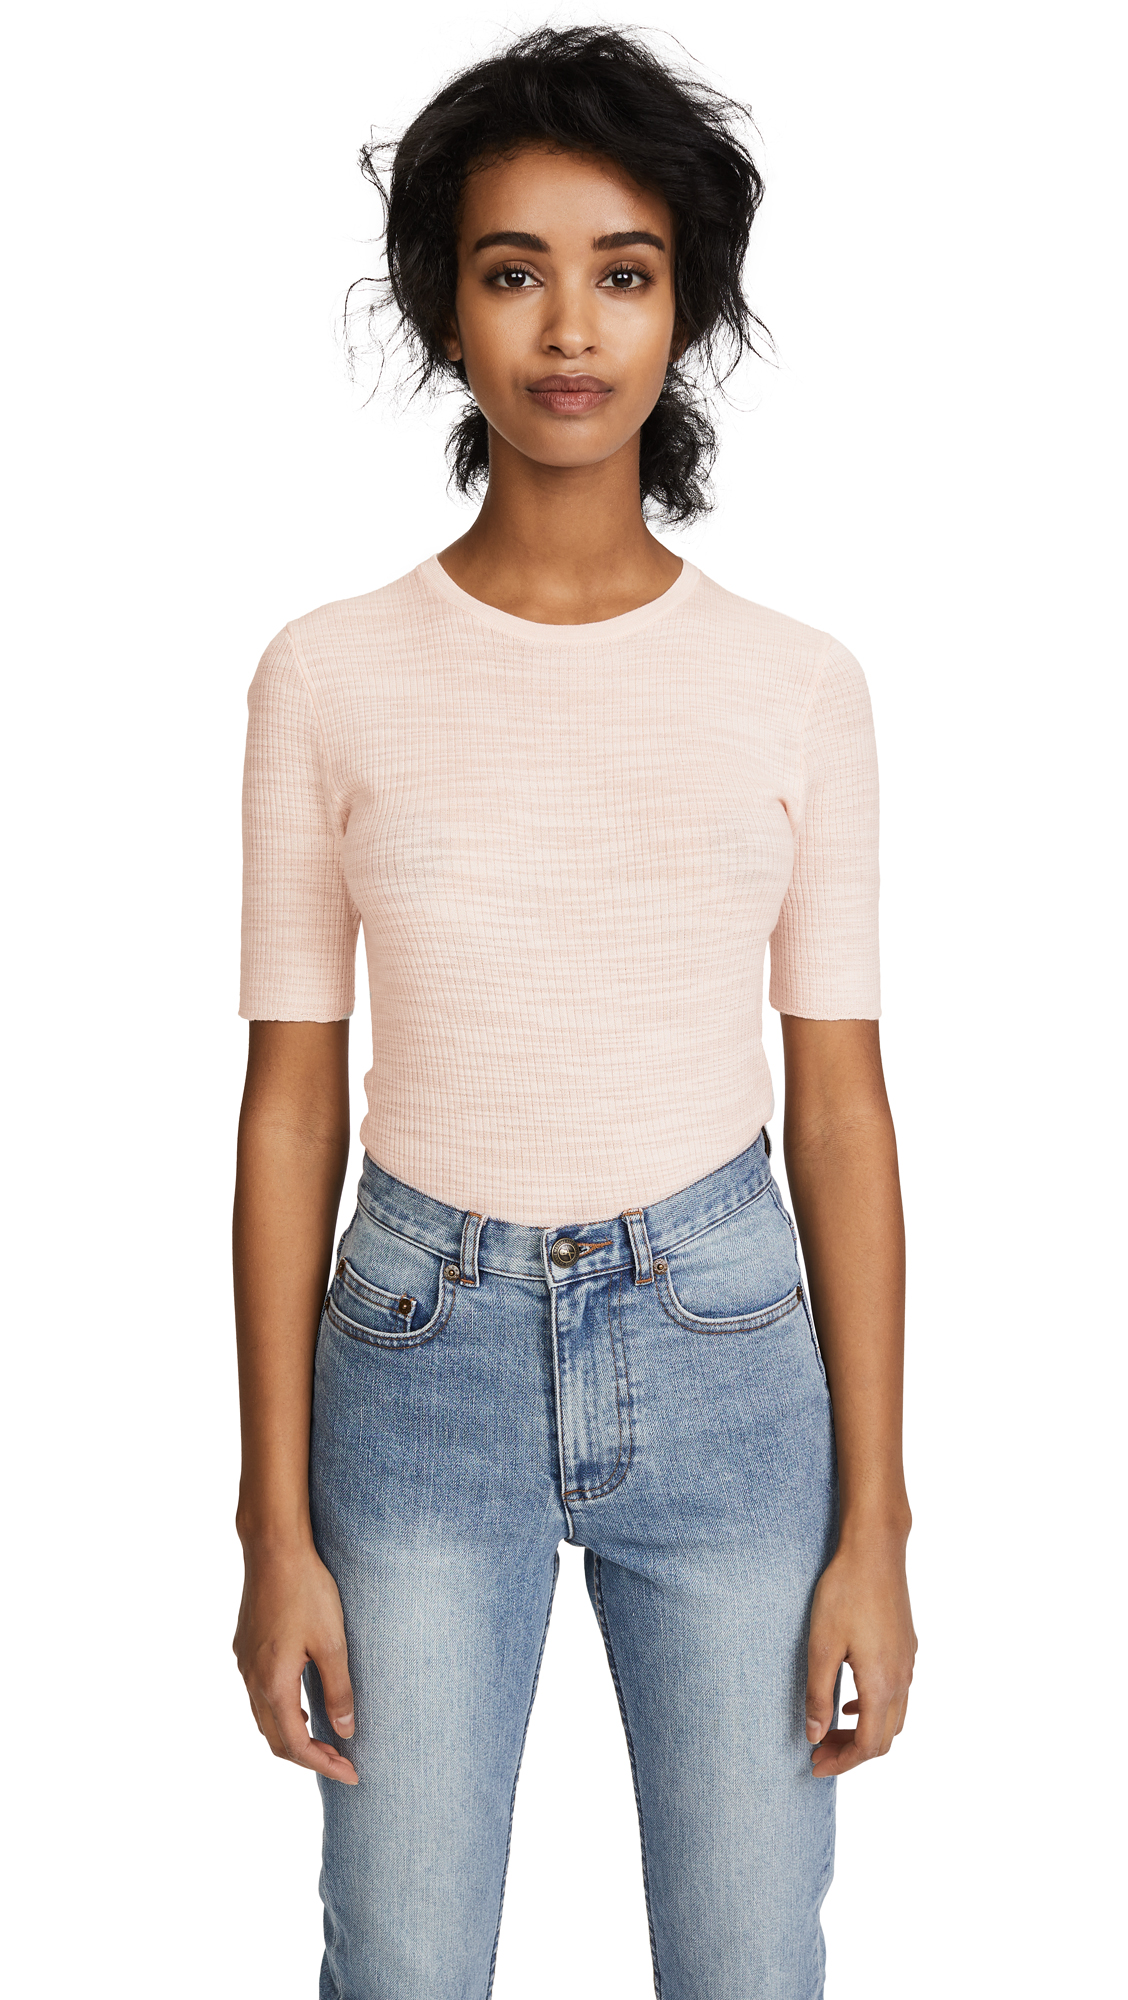 Theory Short Sleeve Fitted Crew - Chalk Pink/White